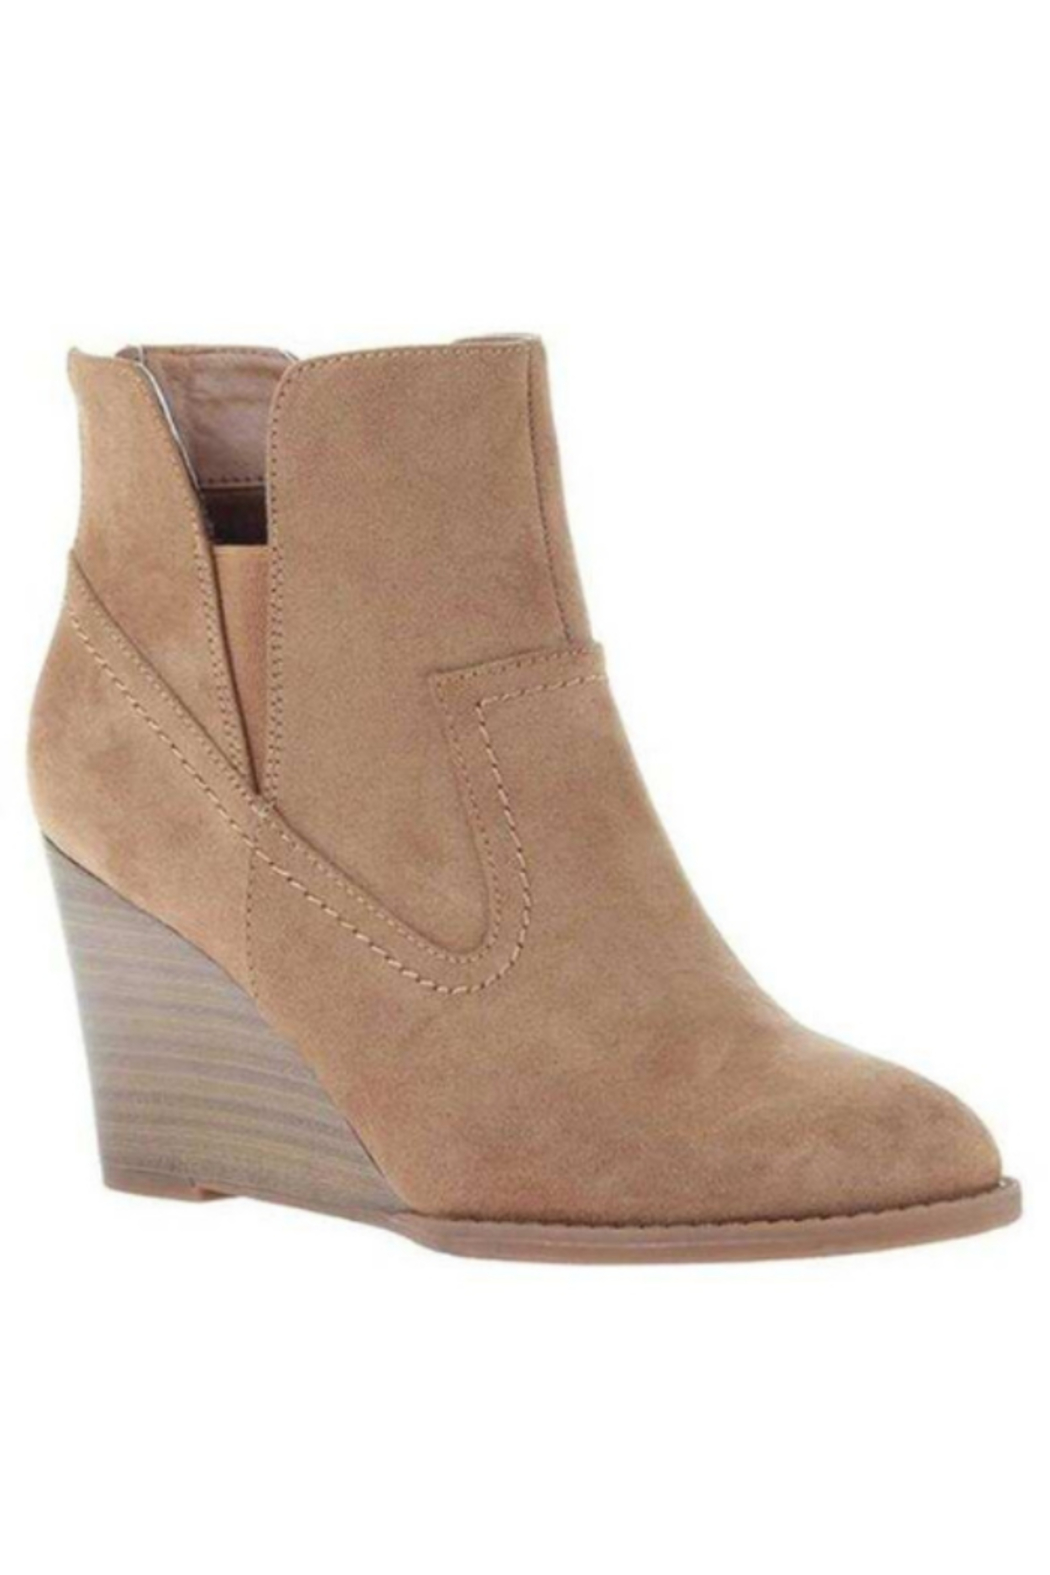 Madeline  Fantasyland Wedge Boot - New Tan - Front Cropped Image